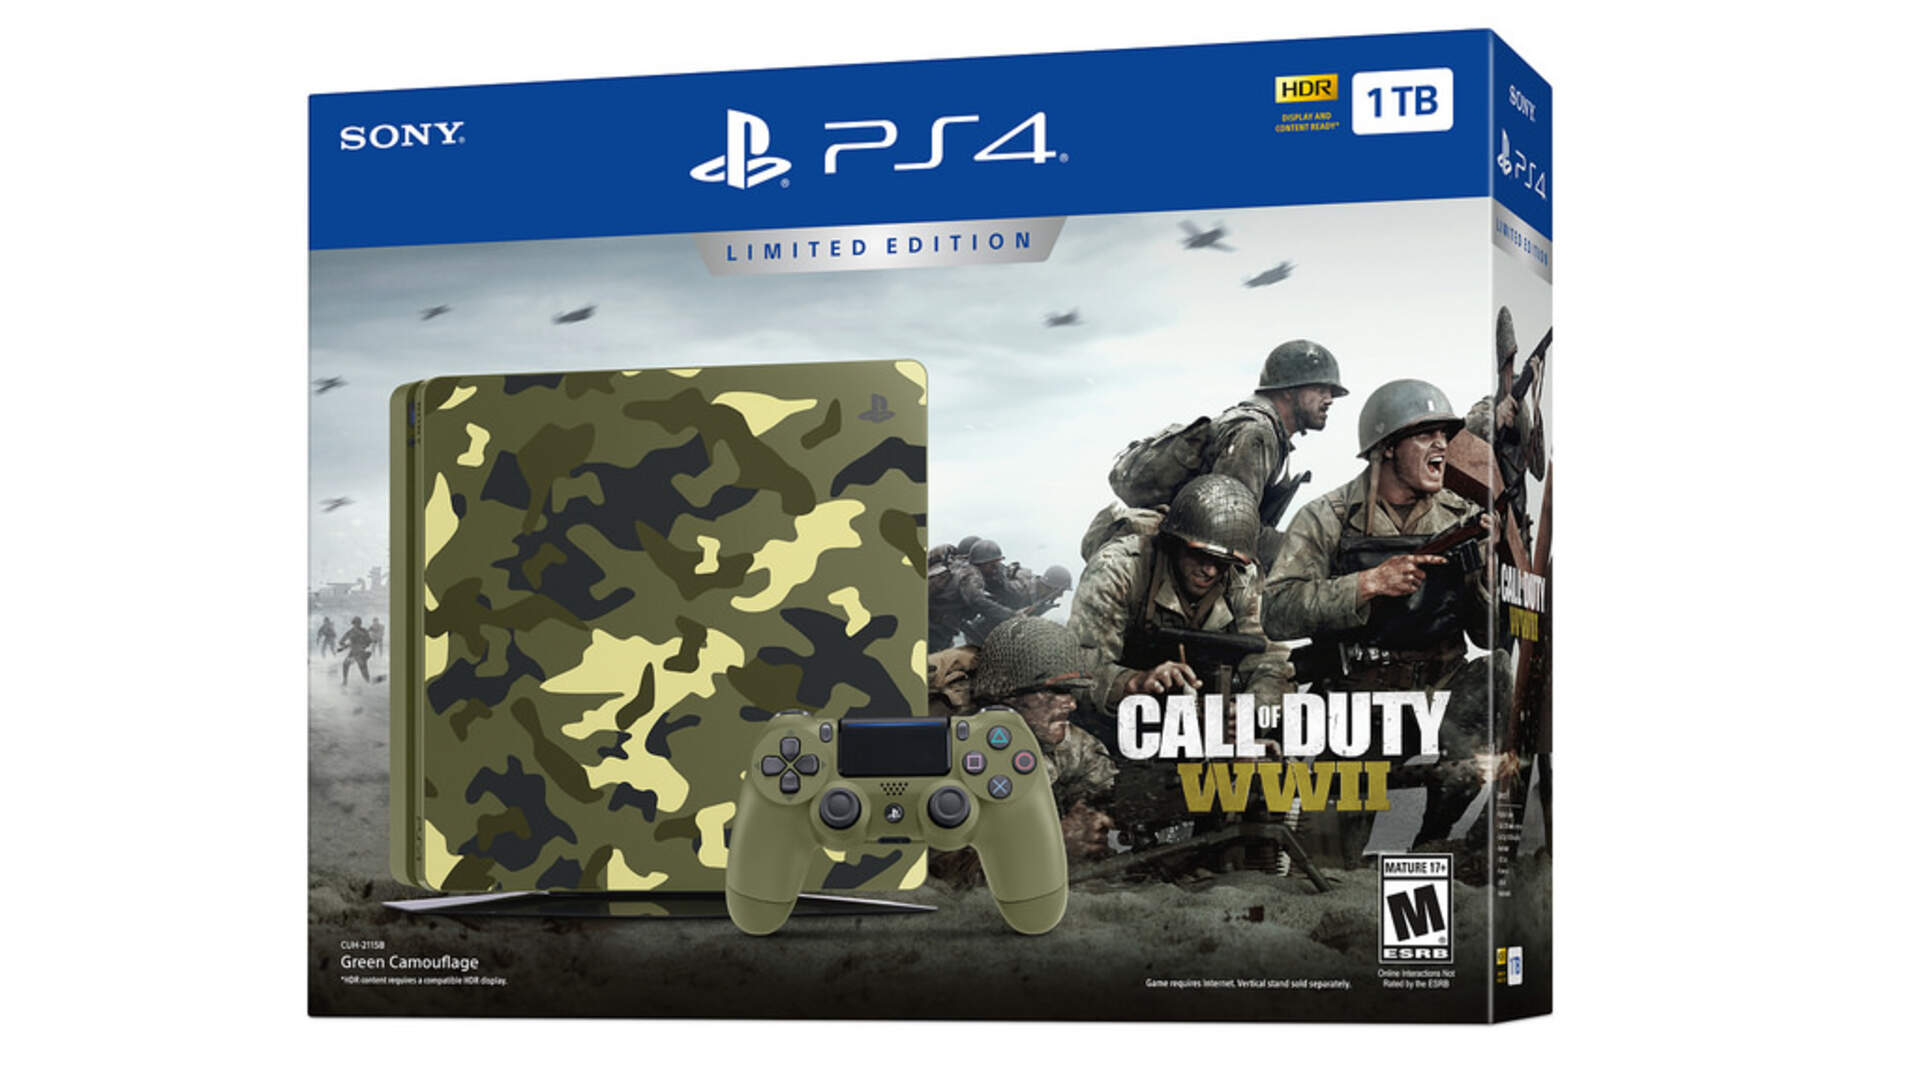 Yup, This Sure is a Camouflage PS4 Bundle for Call of Duty: WWII